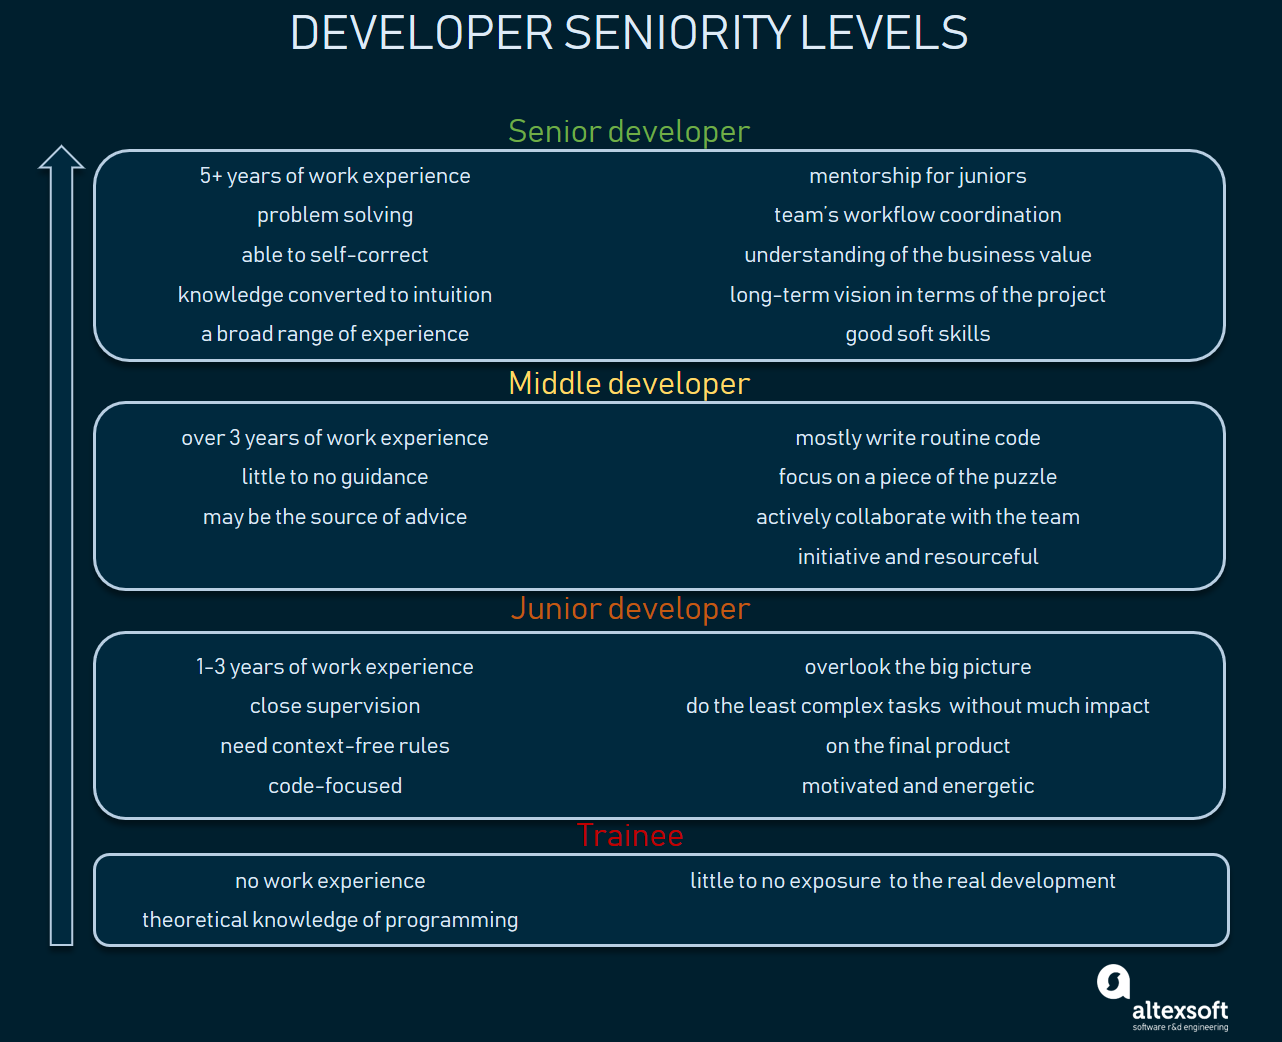 Competencies of developer seniority levels